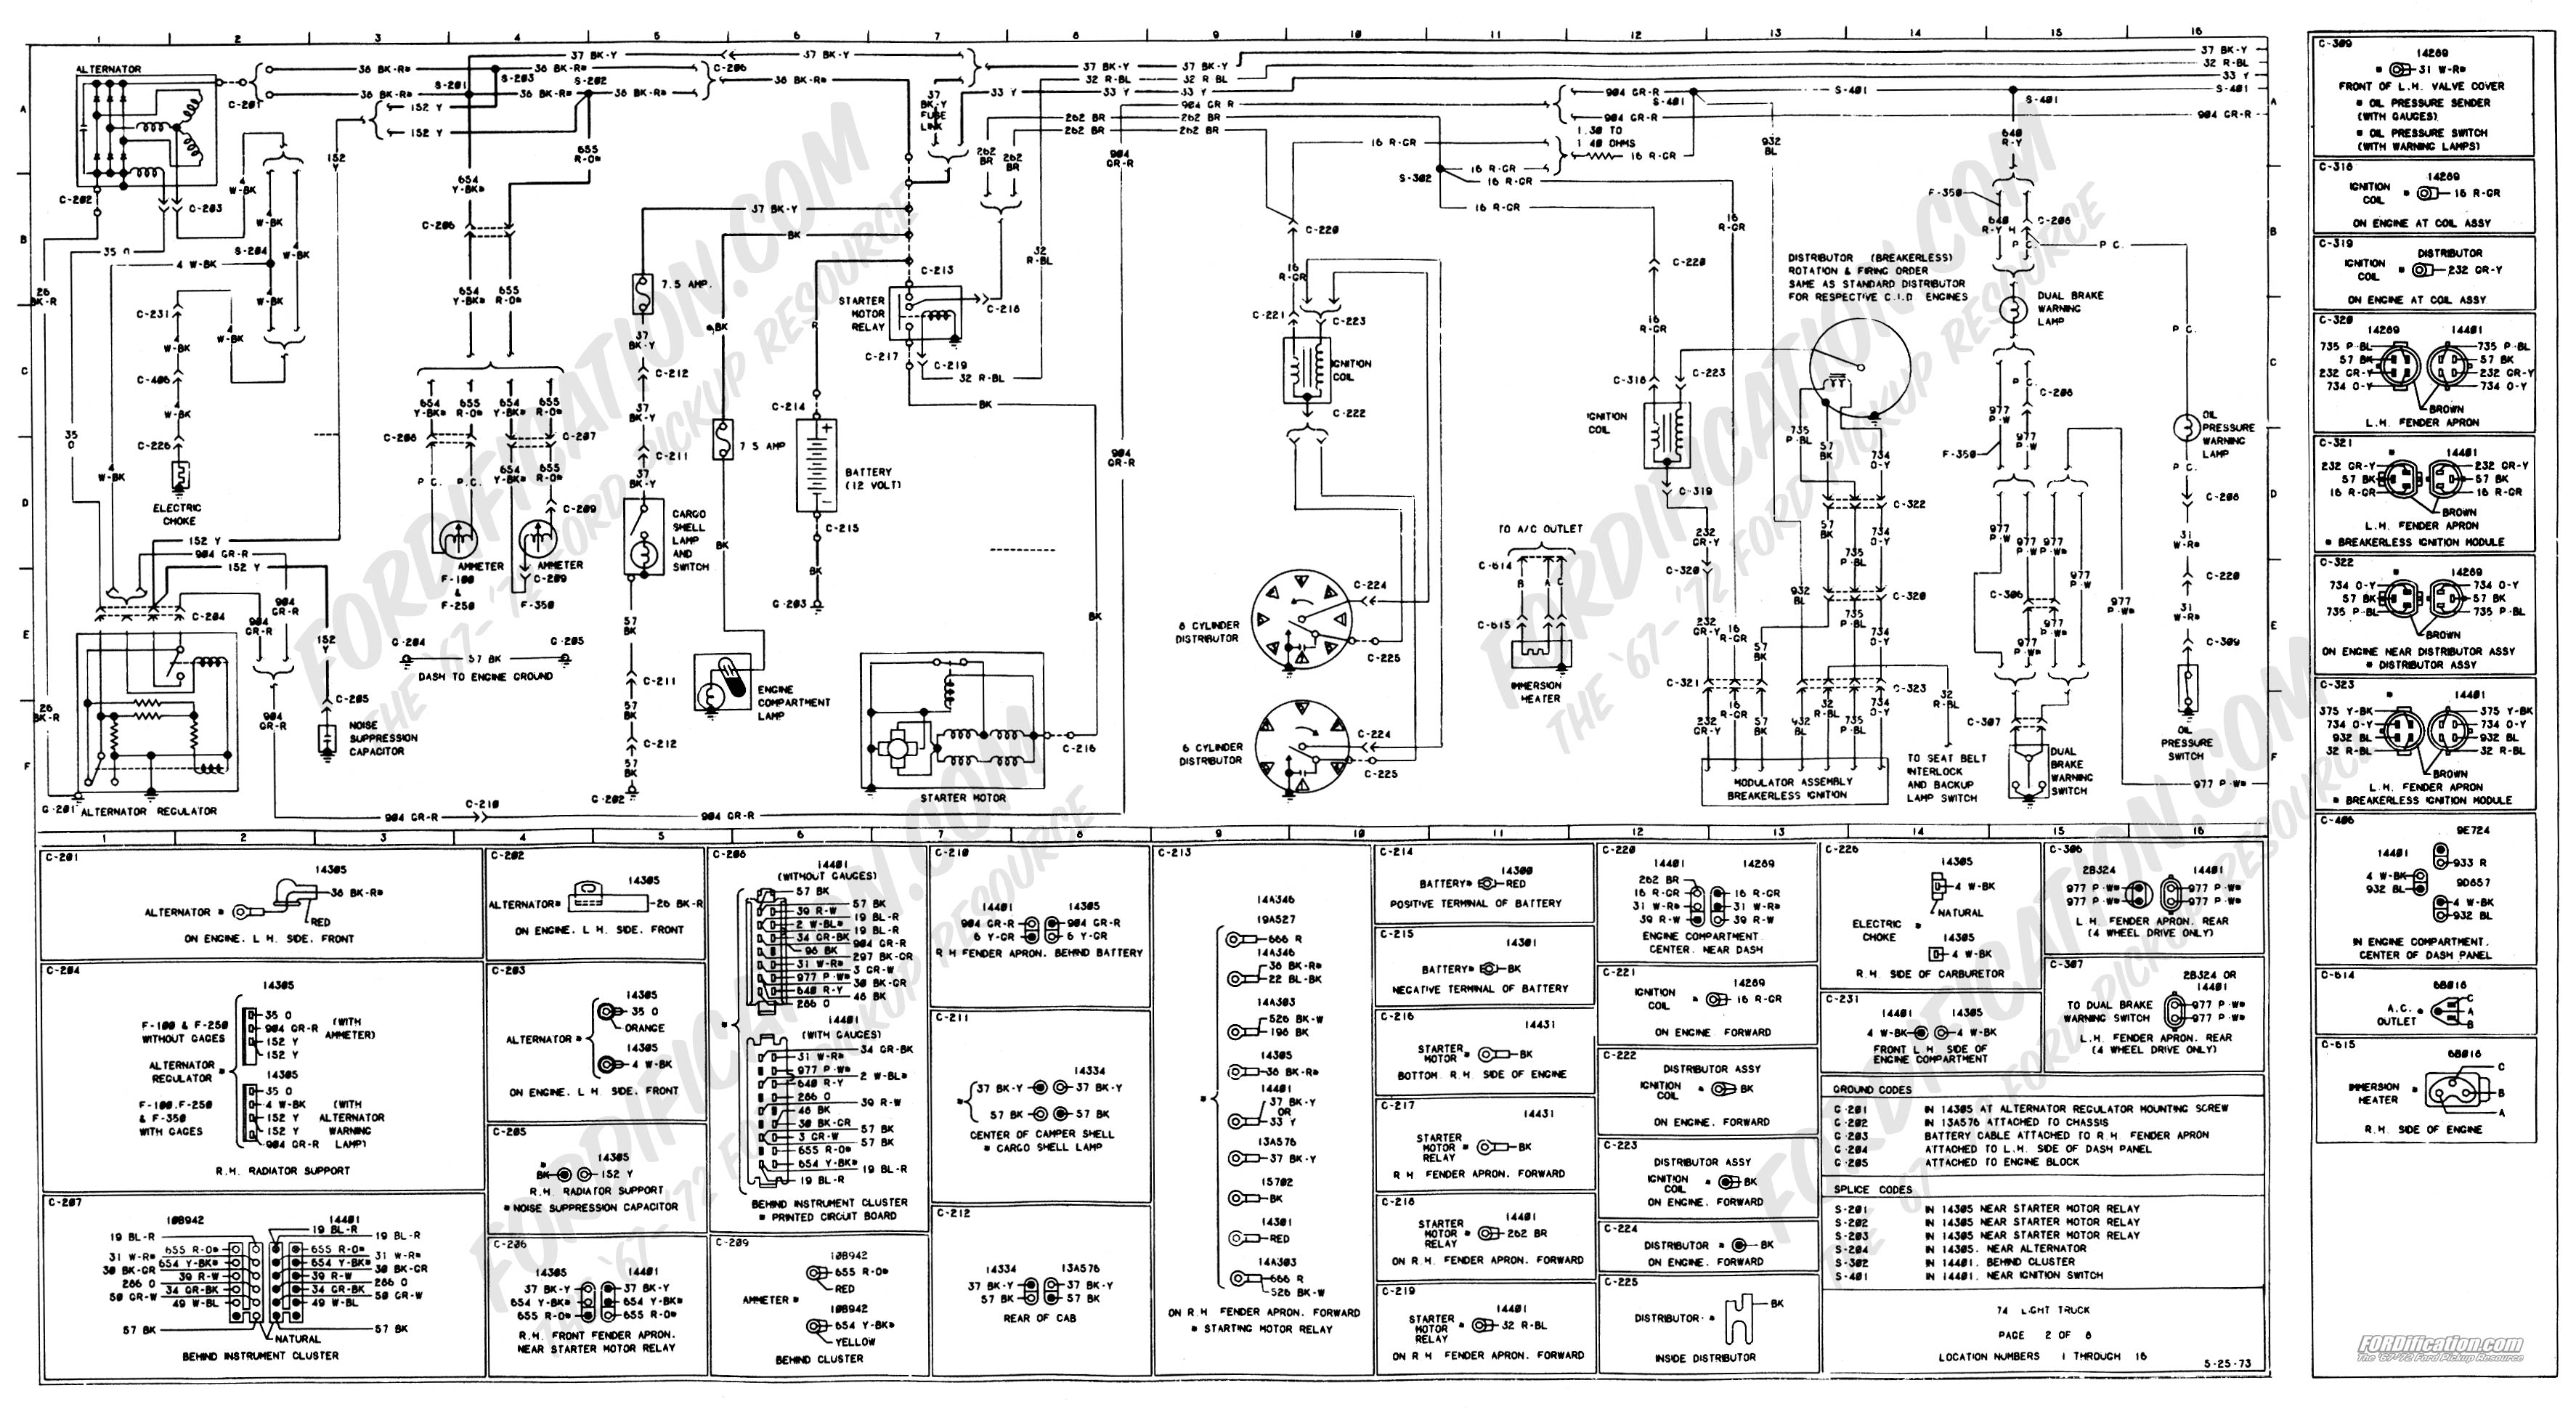 1973 Ford F 250 Wiring Schematics Starting Know About Wiring Diagram \u2022 F250  Wiring Diagram F250 Wiring Diagram